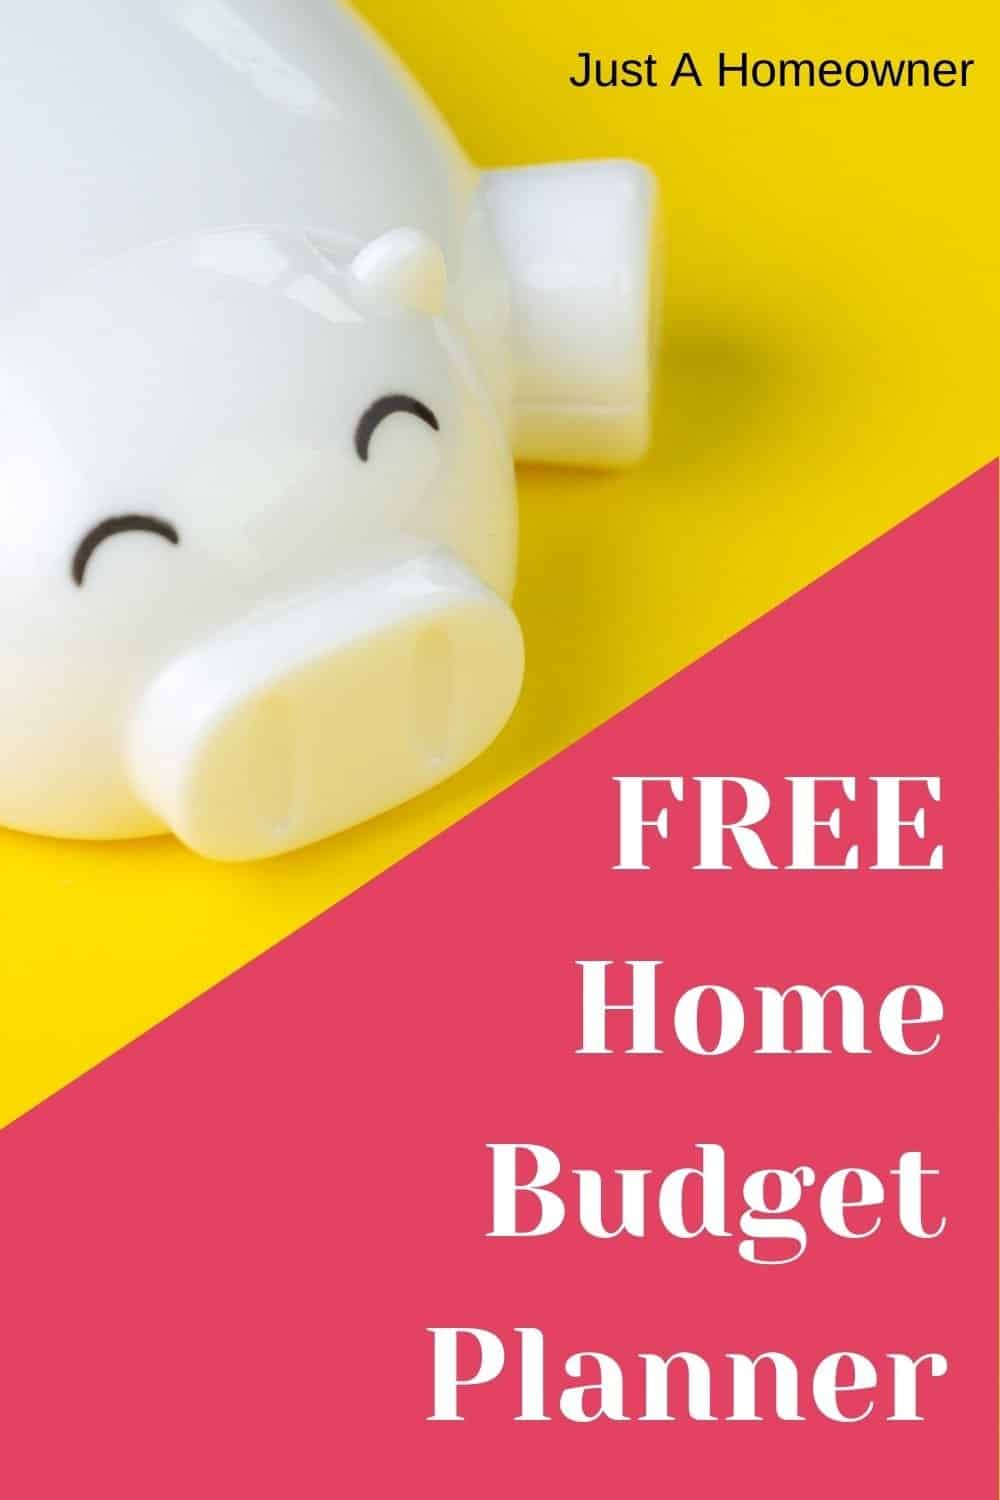 Free Home Budget Planner